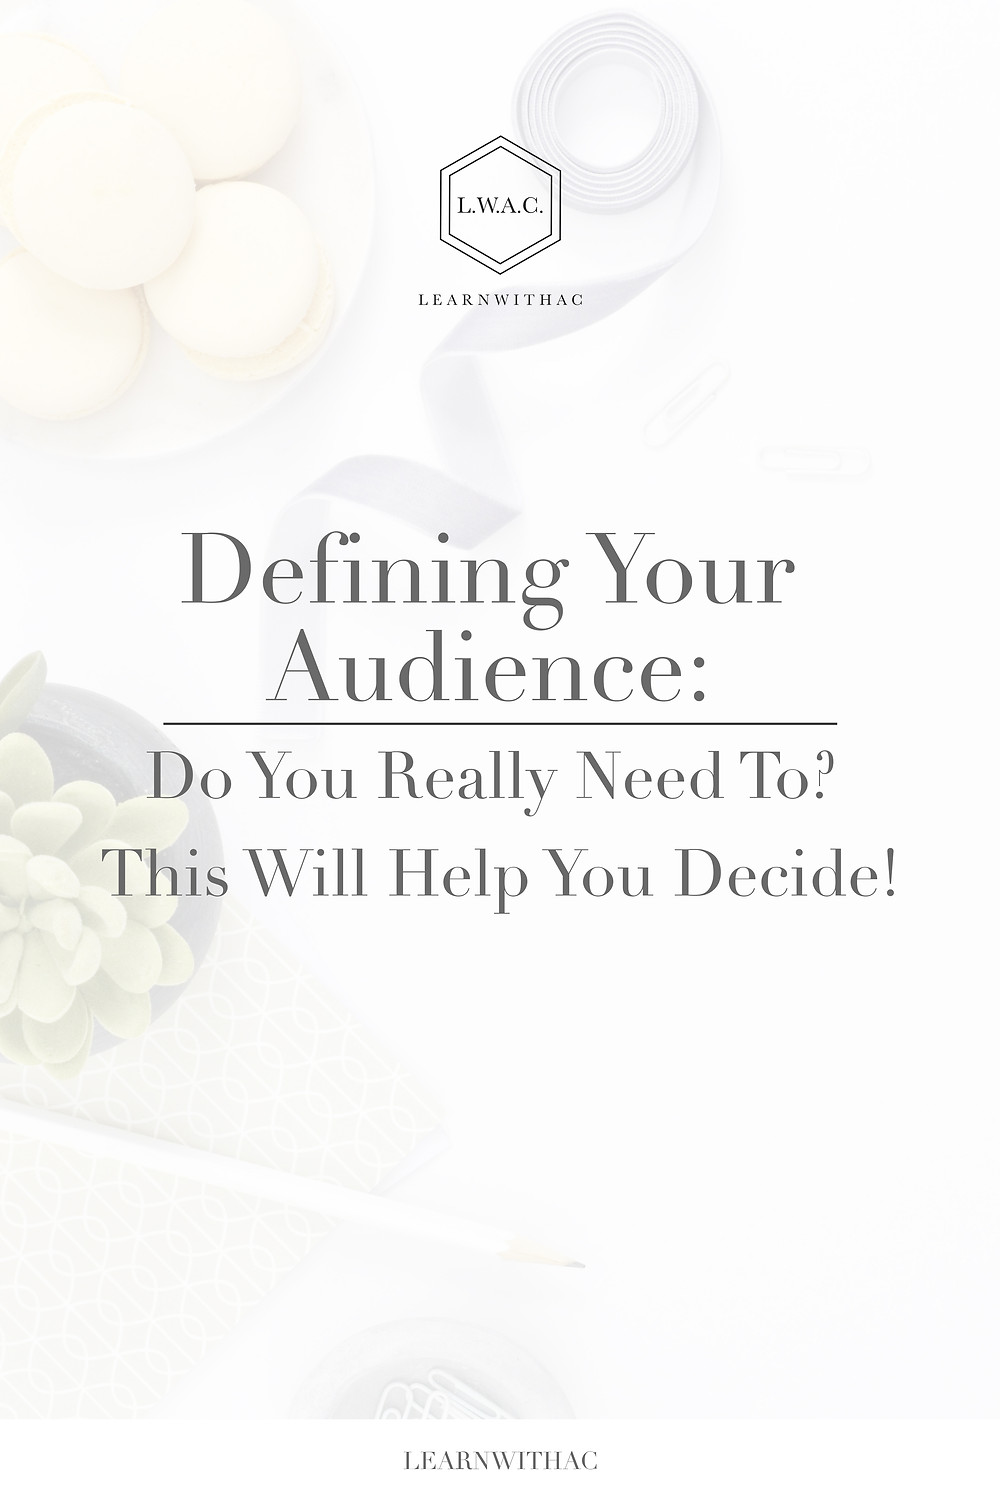 LEARNWITHAC, Defining Your Audience: Do You Really Need To? This Will Help You Decide!